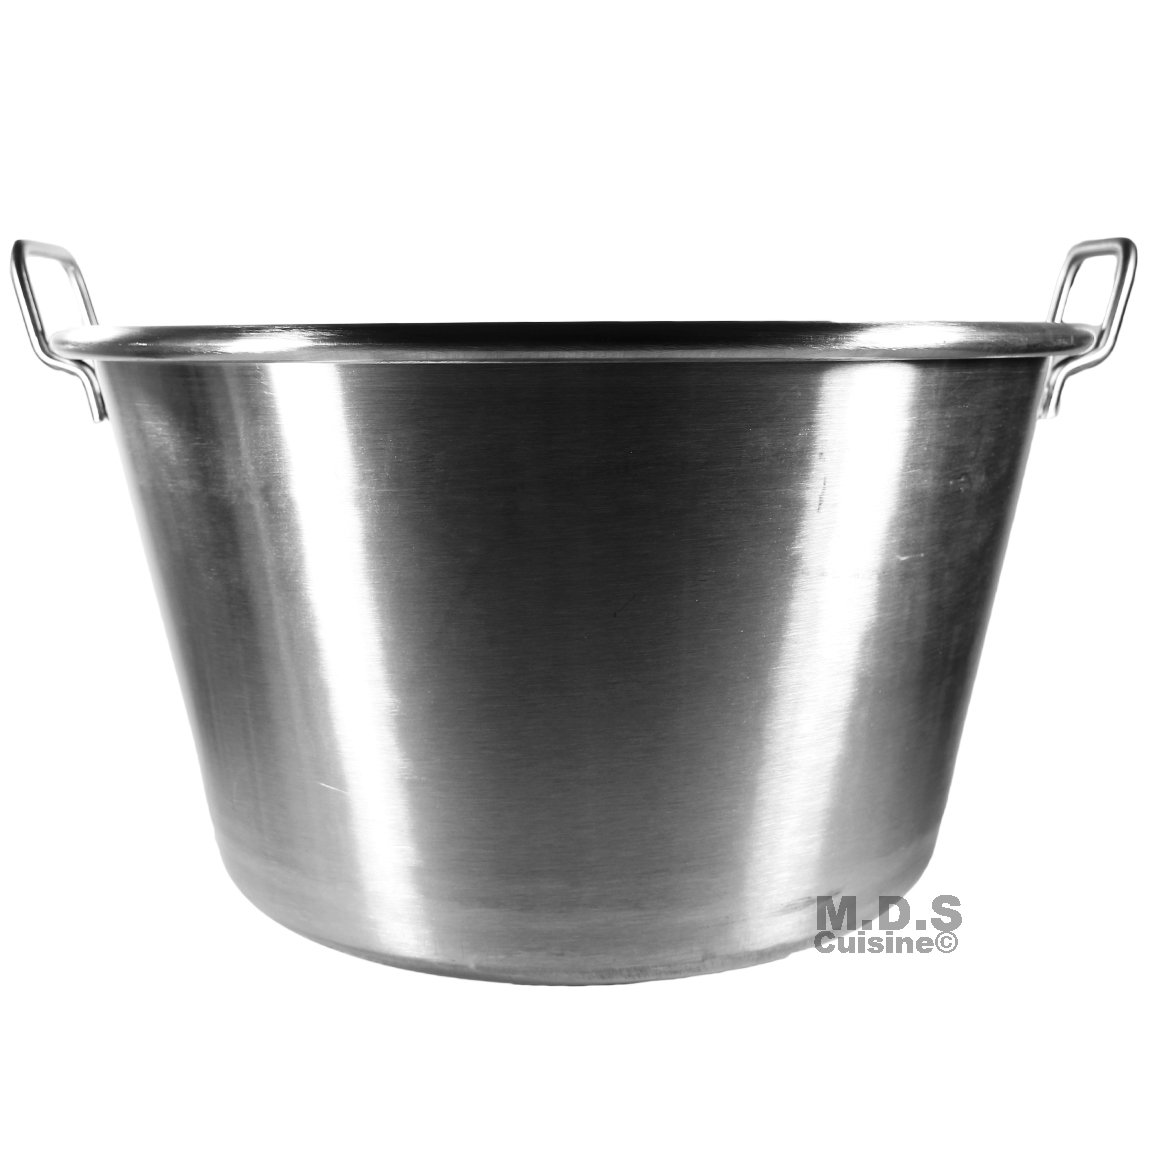 Large Cazo Stainless Steel 21'' Caso para Carnitas Gas Heavy Duty Wok Acero Inoxidable by M.D.S Cuisine Cookwares (Image #6)